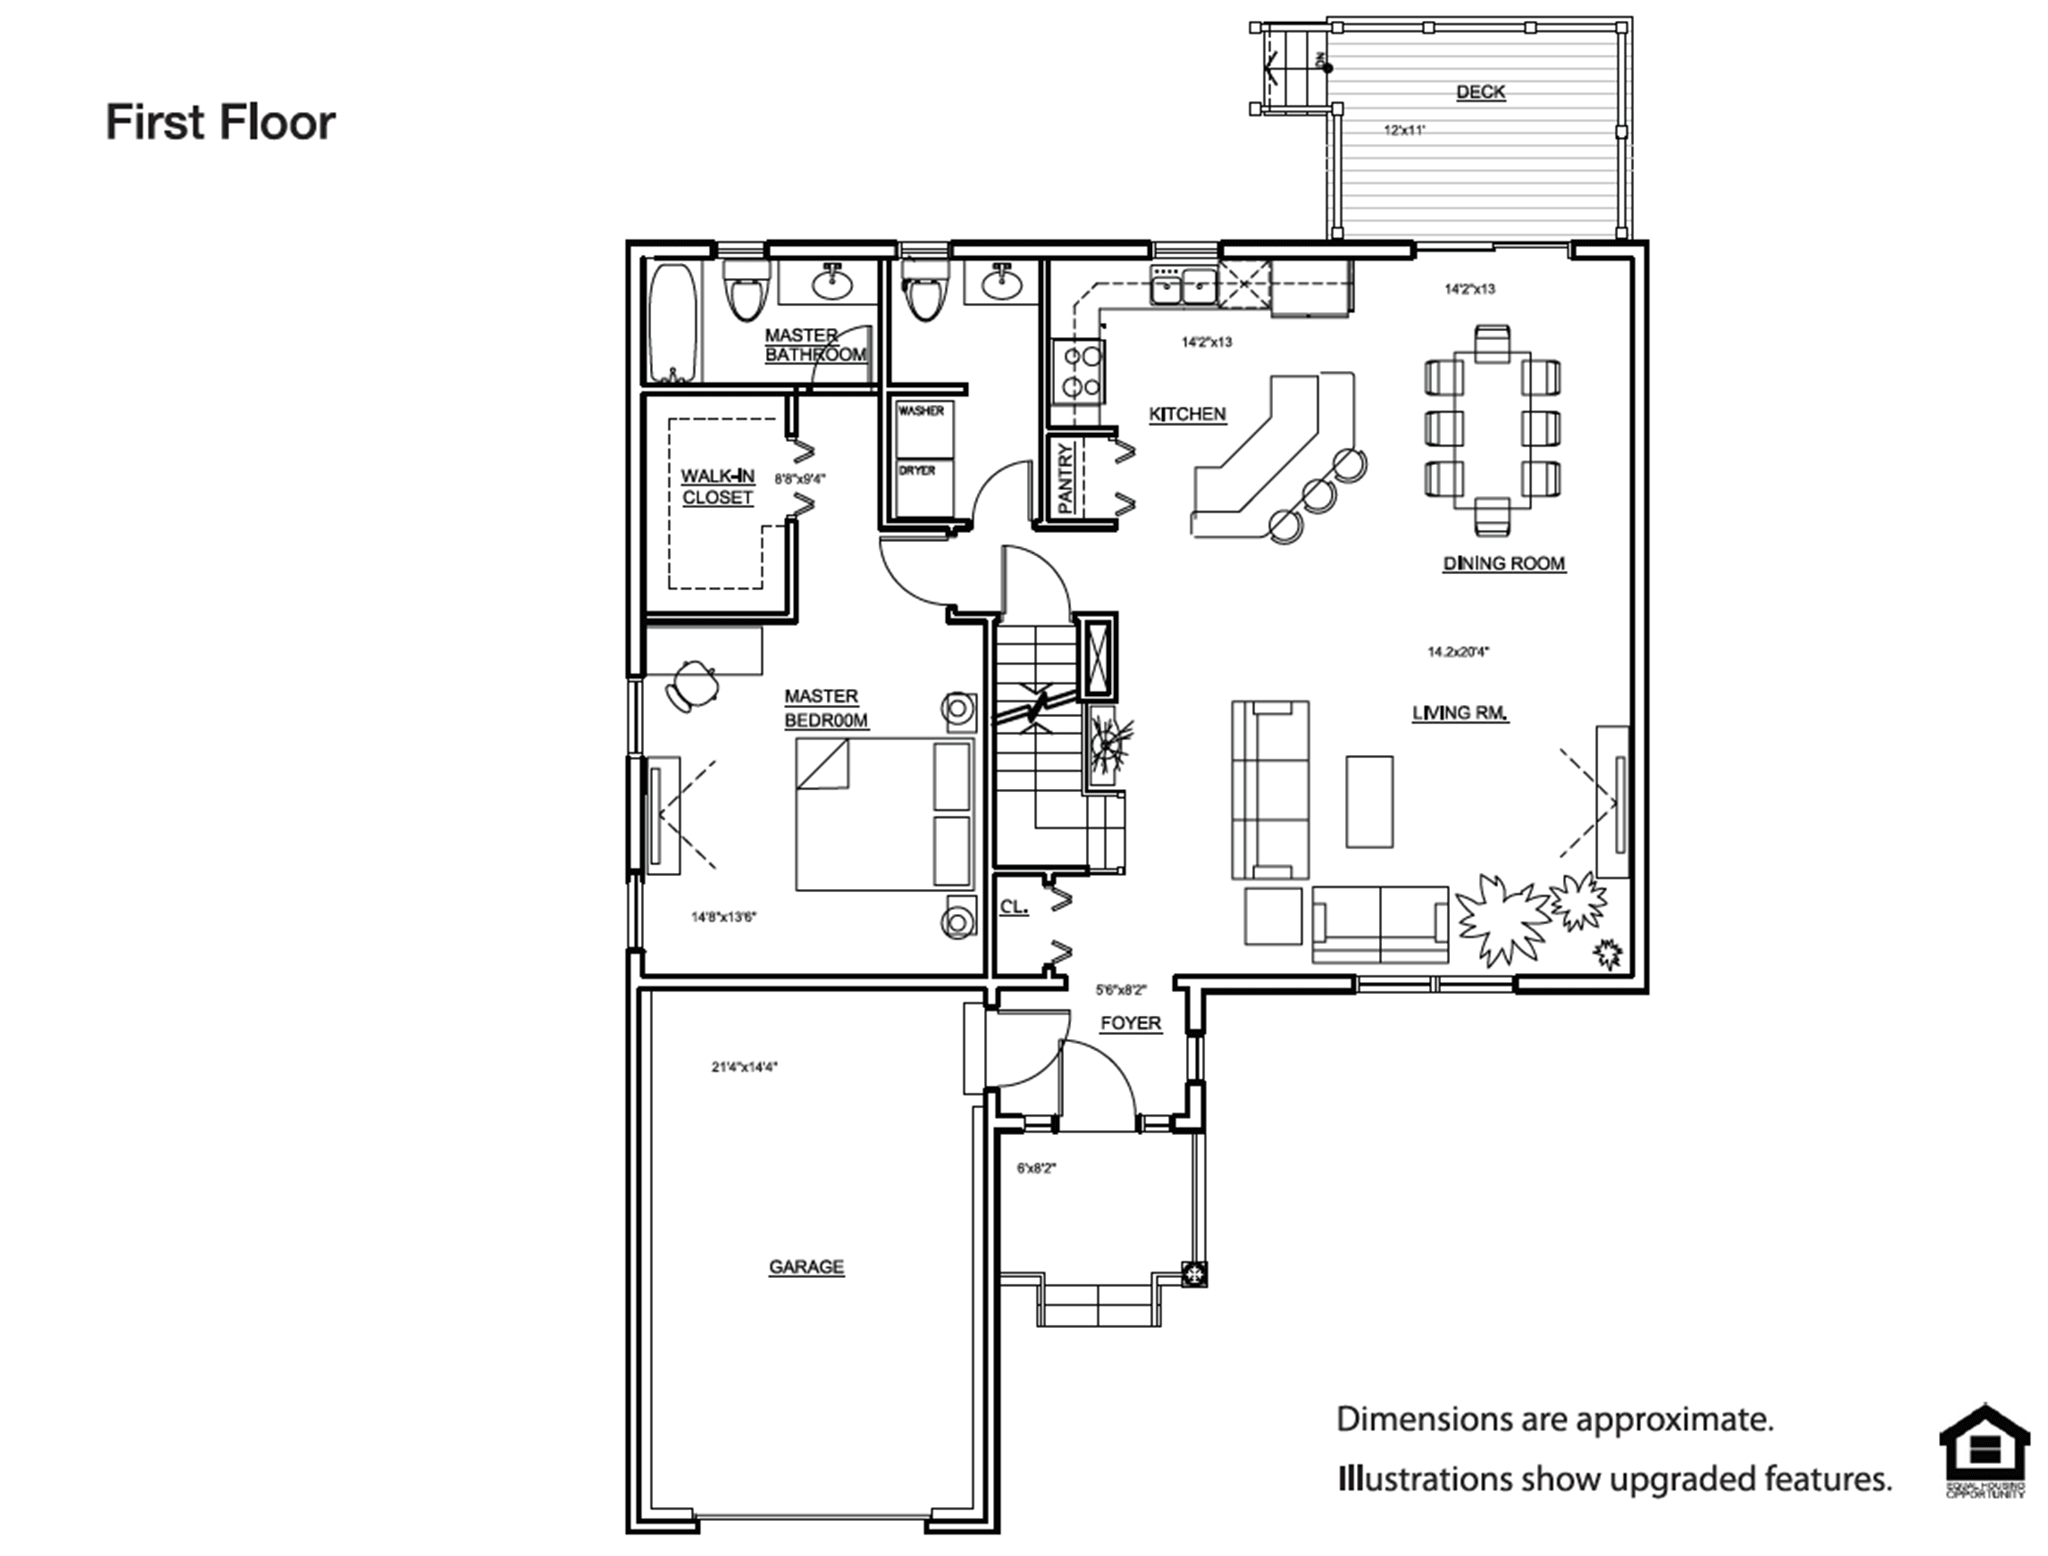 Empire First Floor Plan